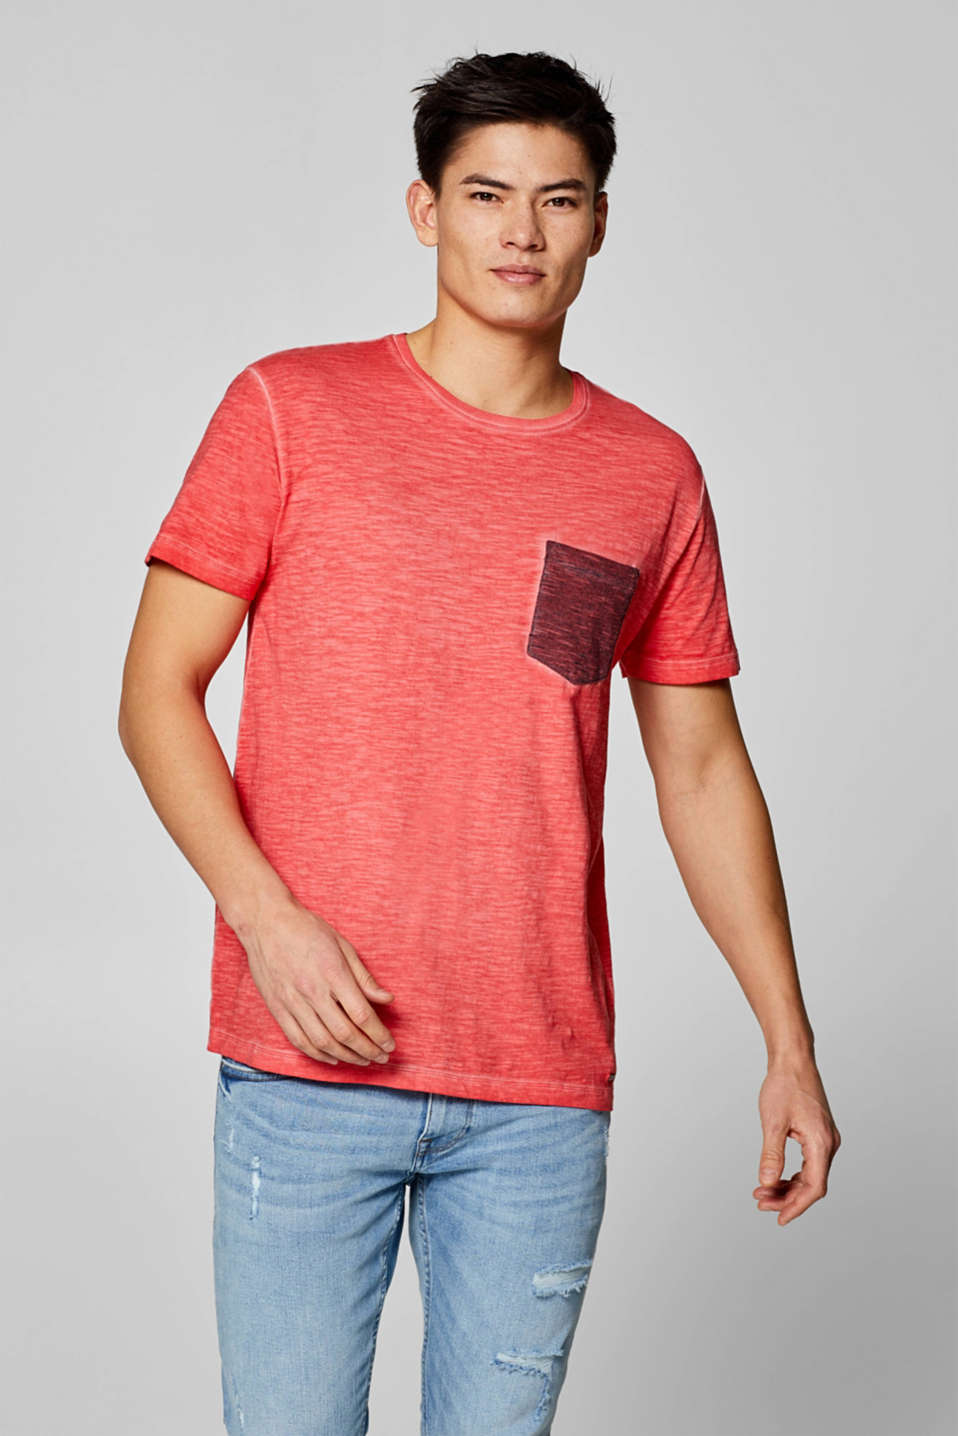 Esprit - Cold-dyed jersey T-shirt in 100% cotton